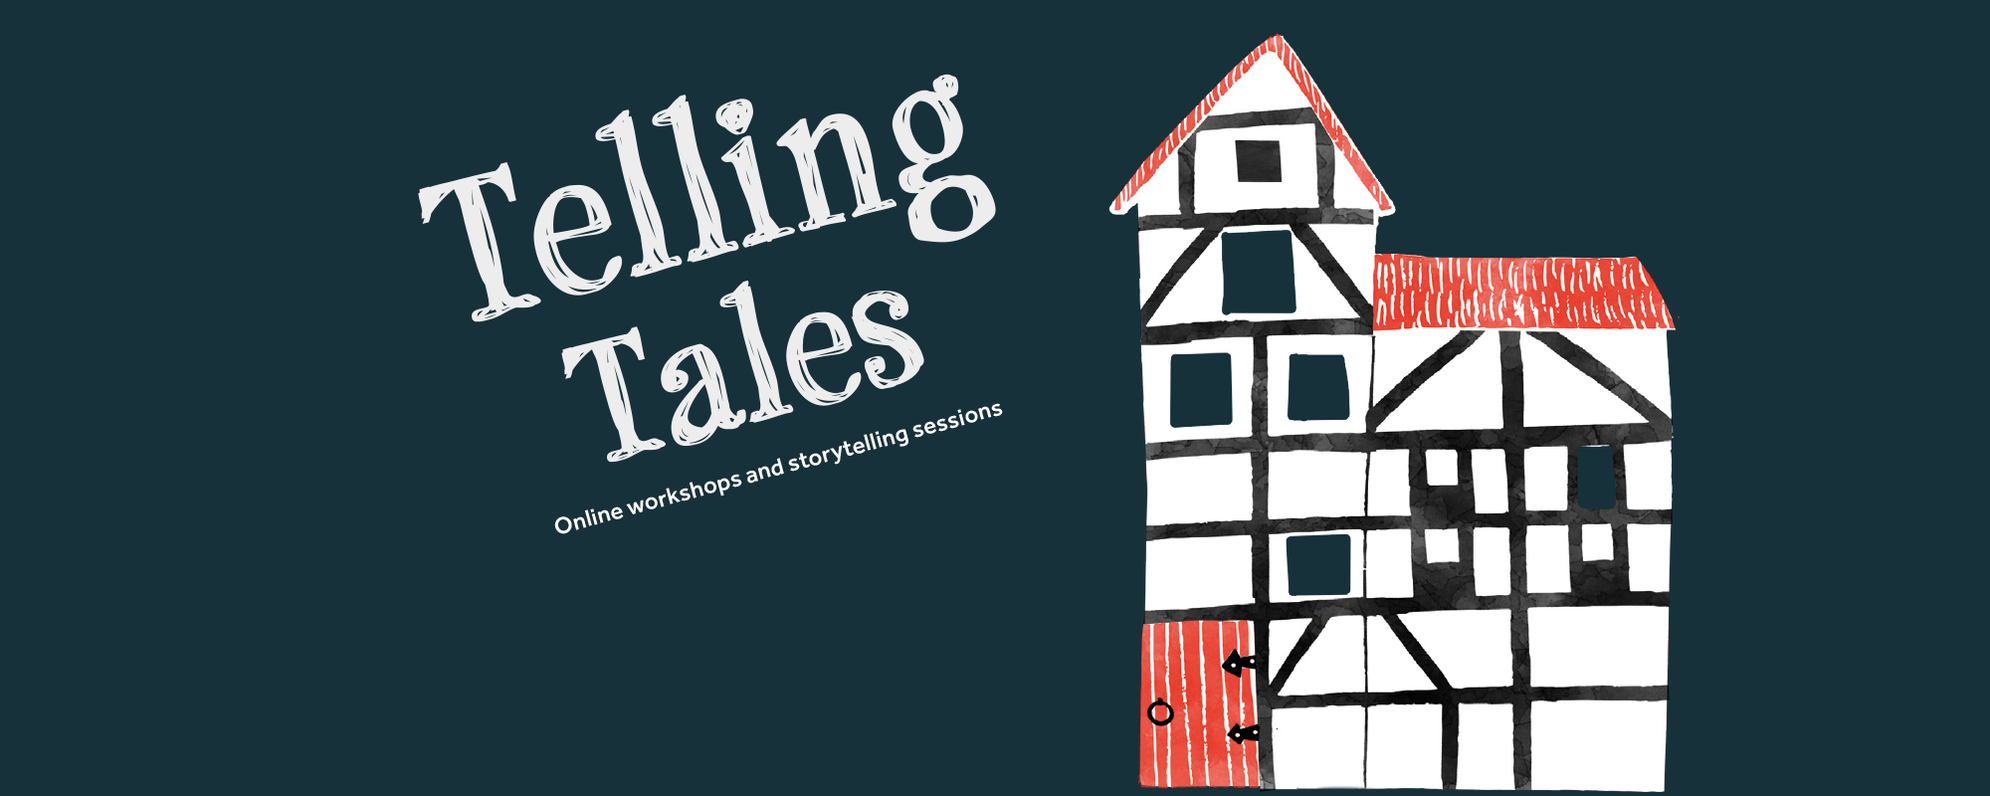 Text: Telling Tales, Online workshops and storytelling sessions with an illustration of the Globe